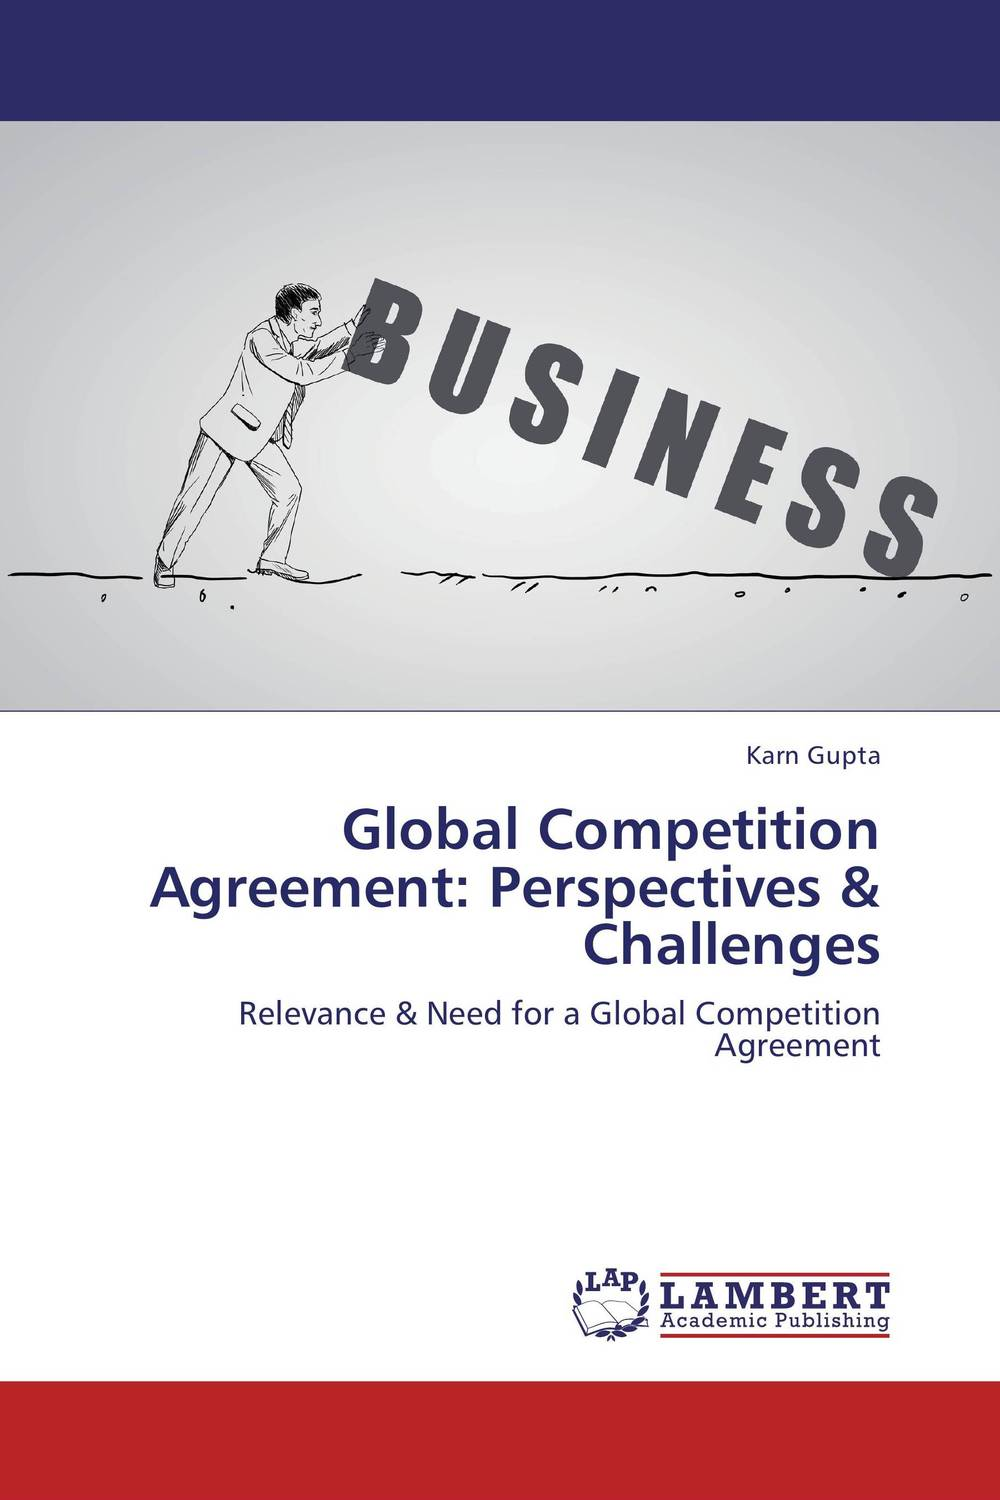 Global Competition Agreement: Perspectives & Challenges